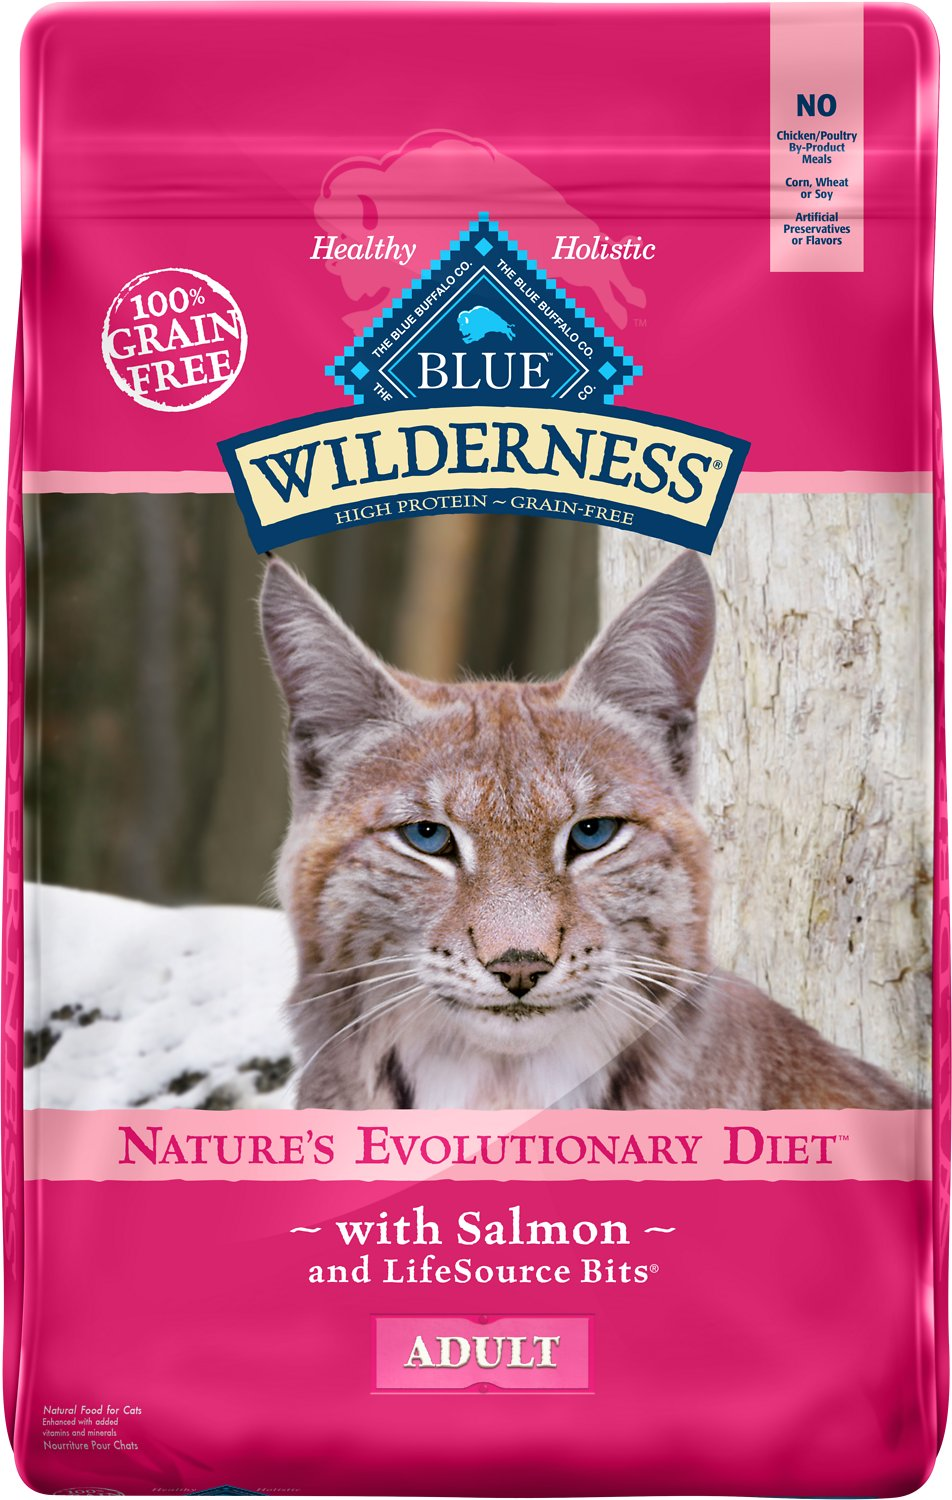 Blue Buffalo Wilderness Salmon Recipe Grain-Free Dry Cat Food Image